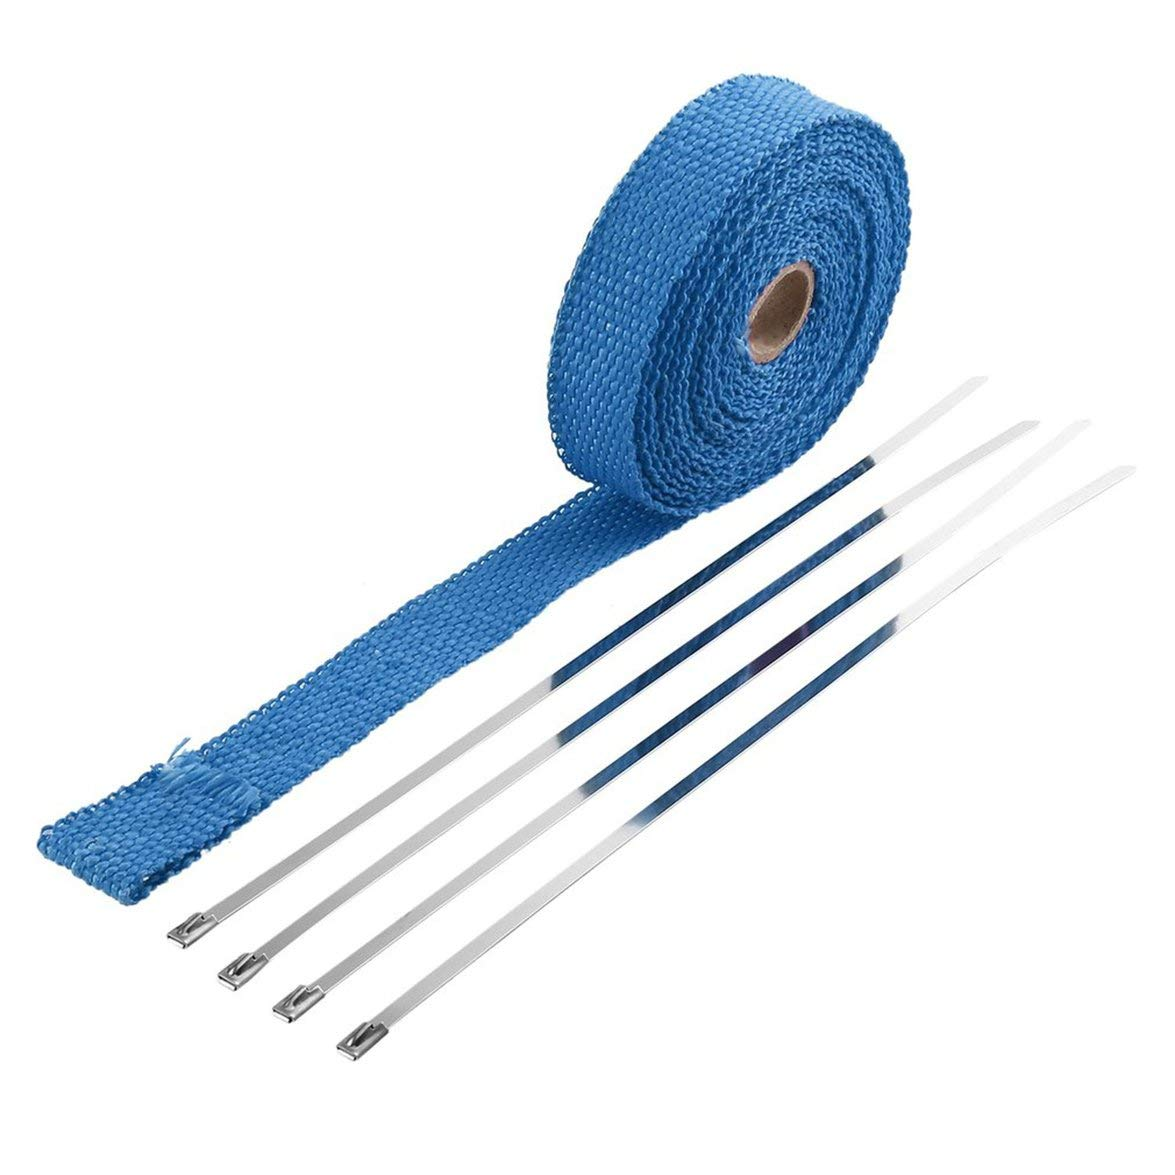 Kongqiabona Incombustible Collecteur Turbo Isolation É chappement Ruban Wrap Tape Thermique Zip Inoxydable Voitures Motos (Bleu)